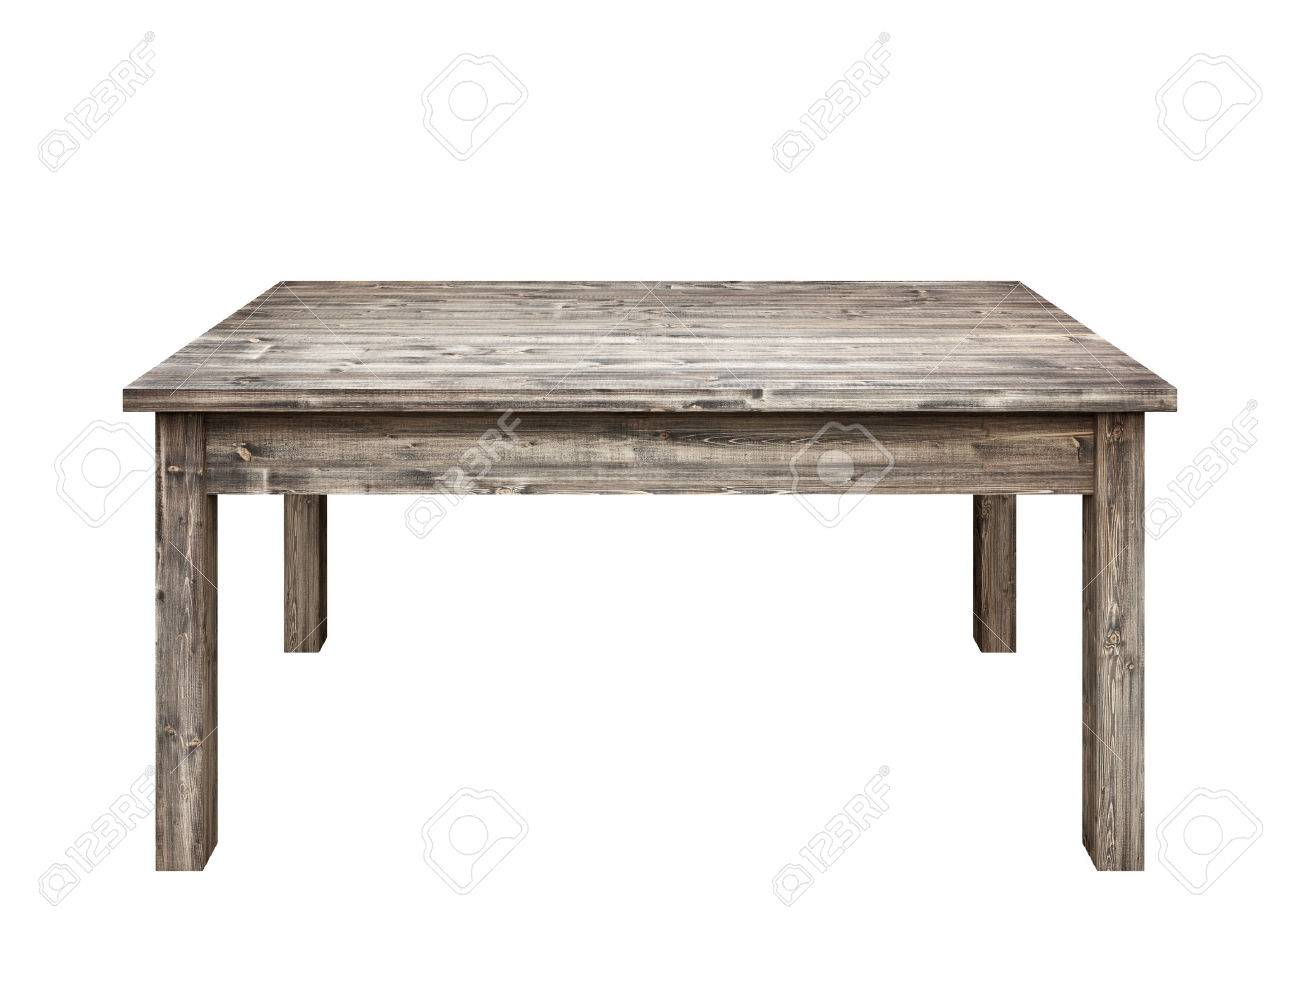 Wooden table on white background. Stock Photo - 36625589